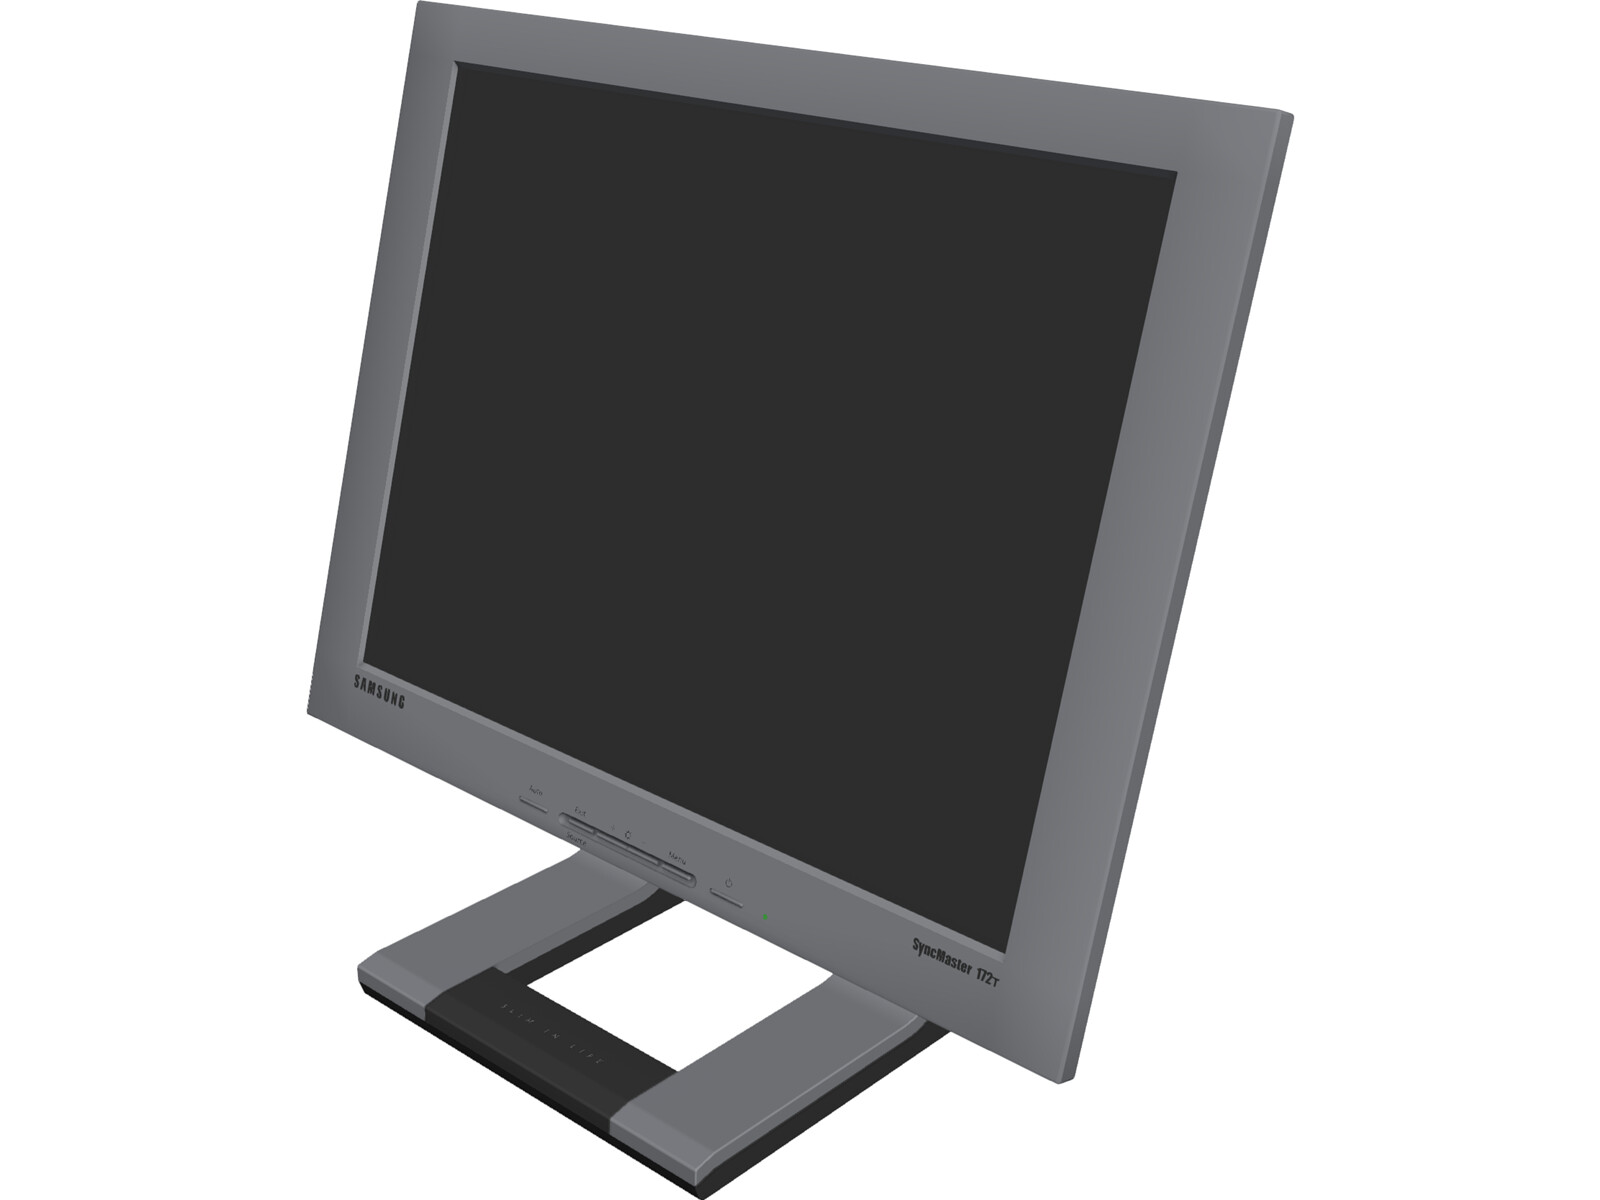 Samsung SyncMaster 172T Display